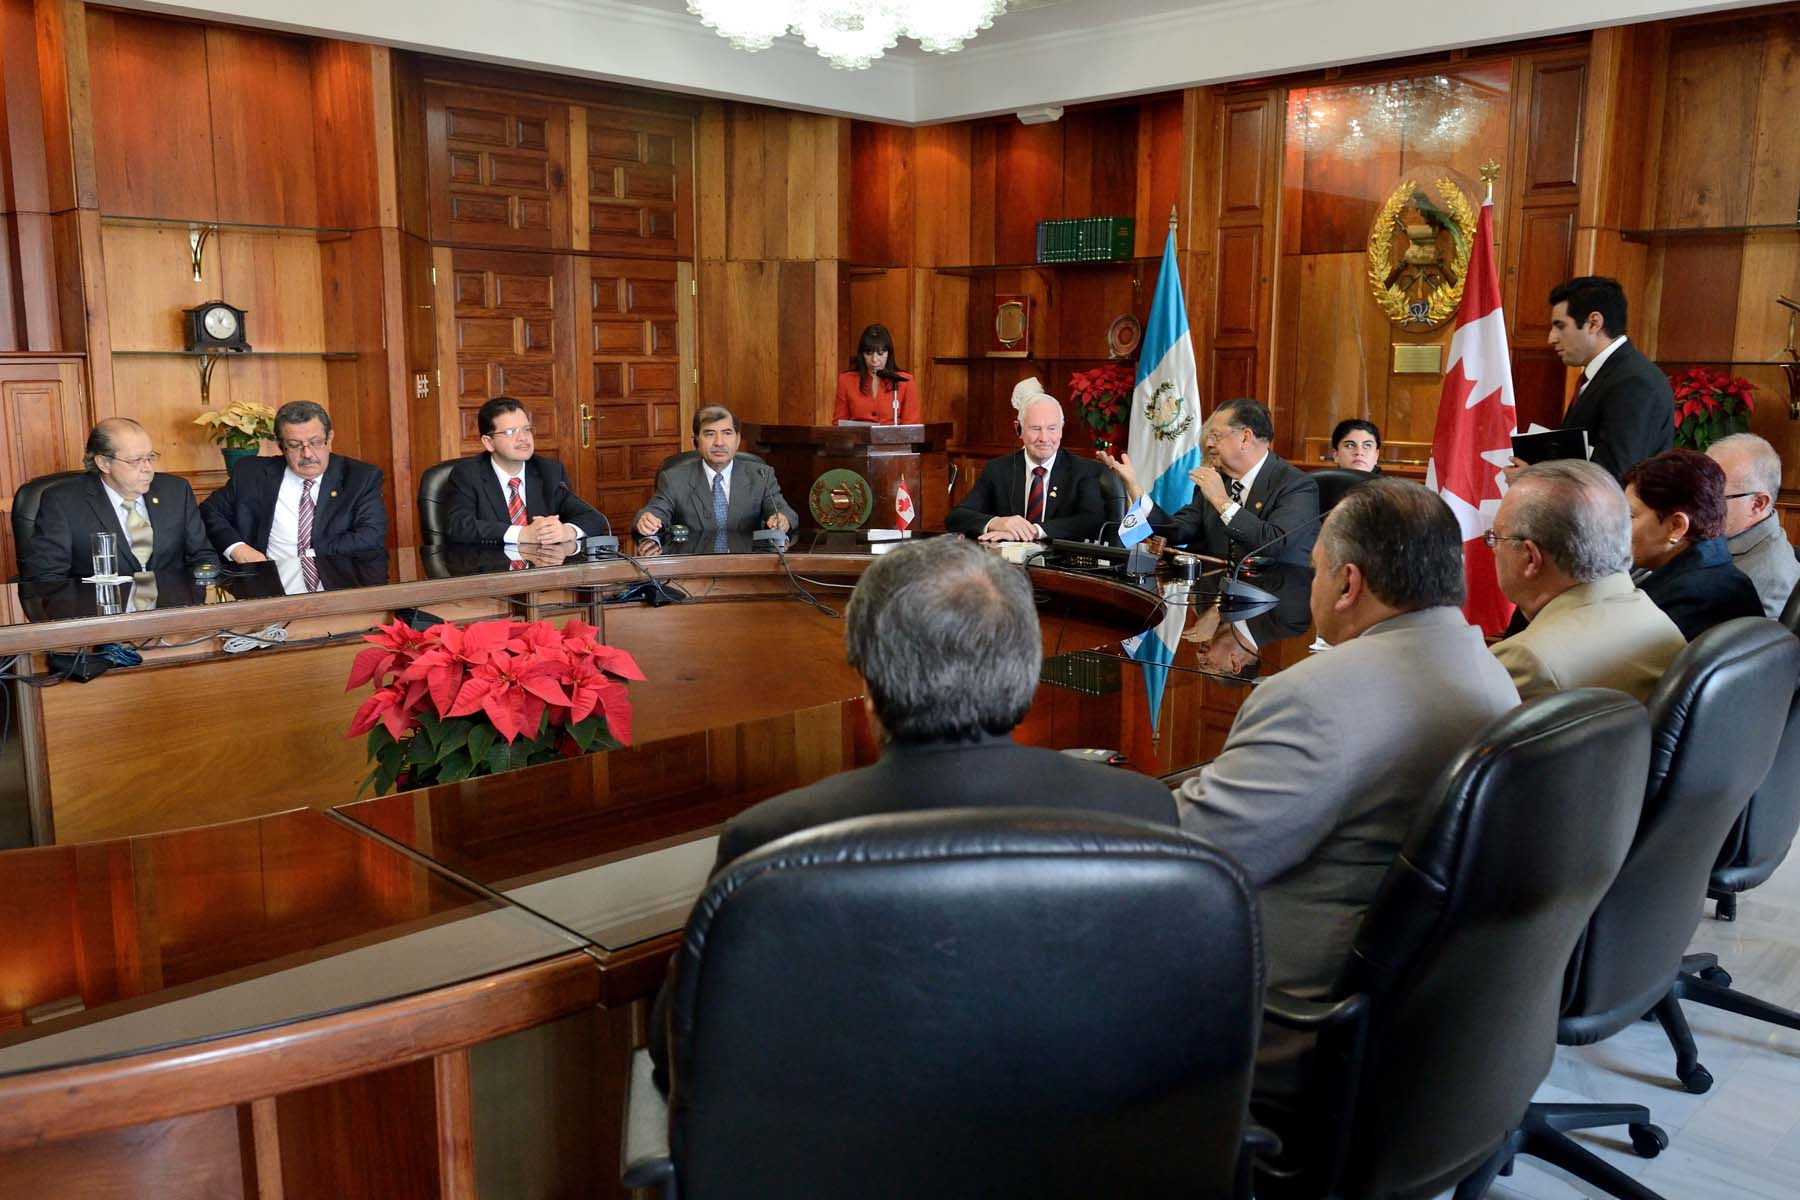 His Excellency also met with the newly elected Supreme Court magistrates to discuss the Canada's ongoing engagement in helping to strengthen Guatemala's systems of governance and rule of law.